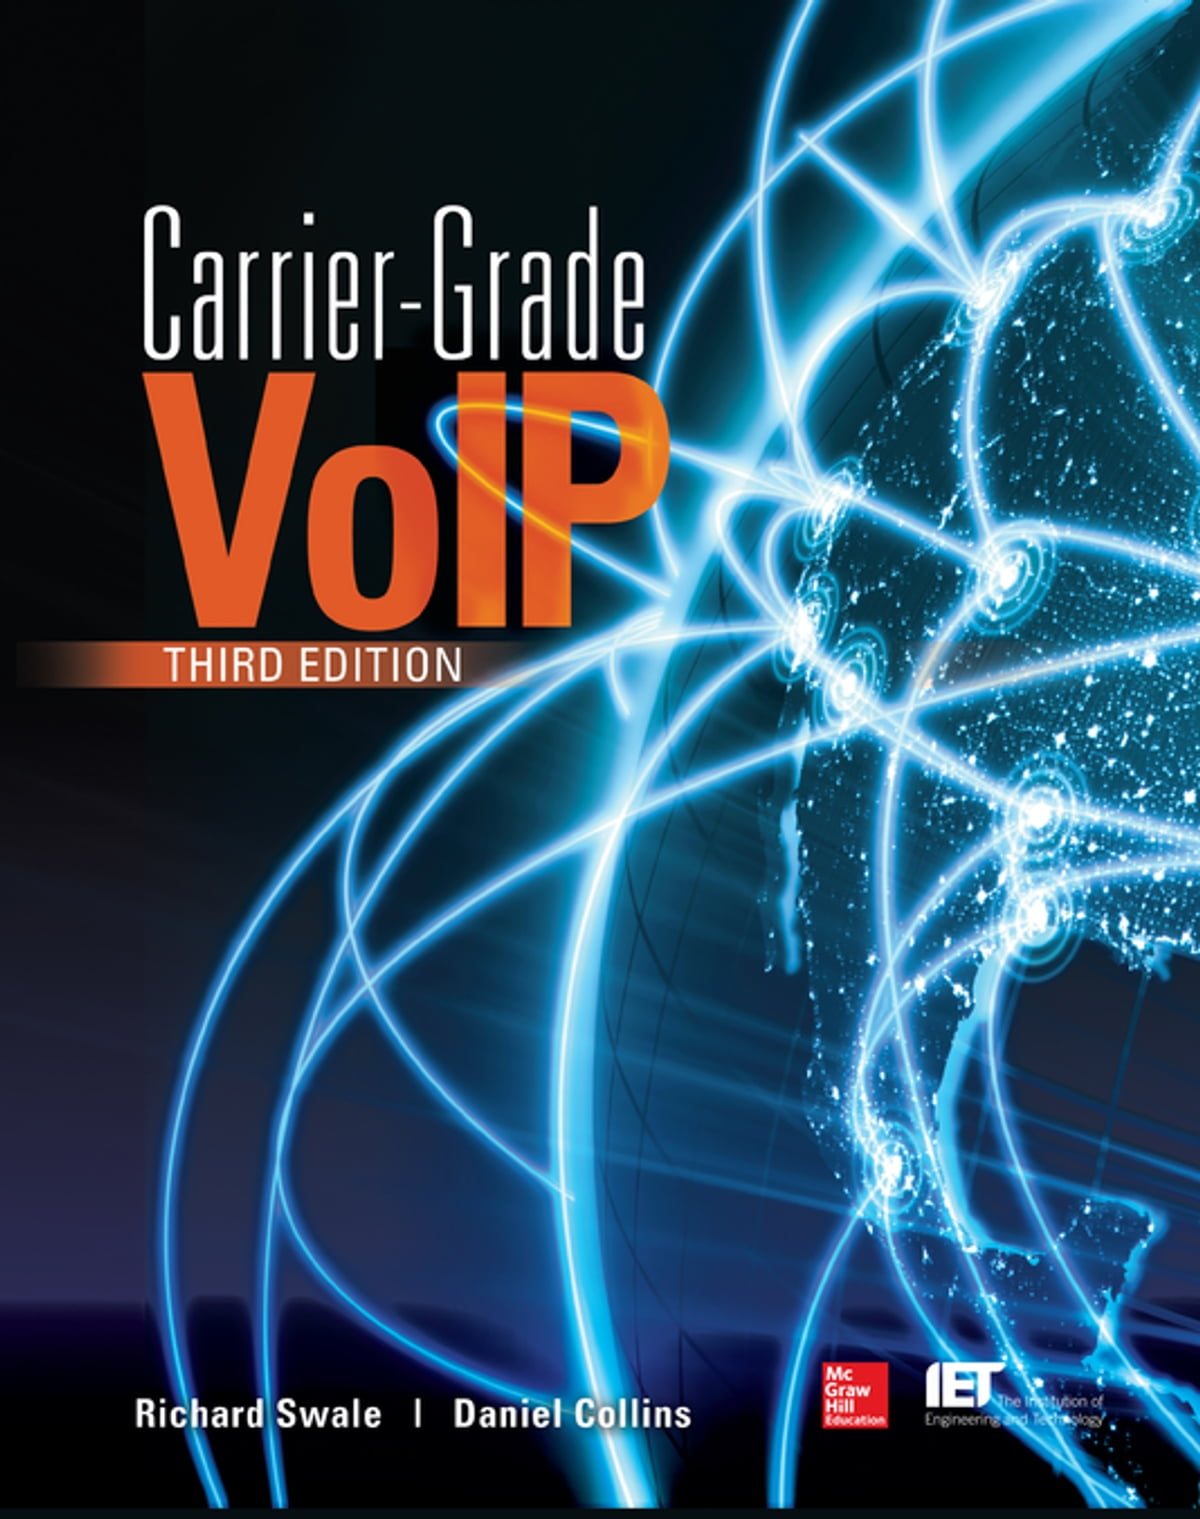 Daniel pdf over collins carrier download grade by voice ip